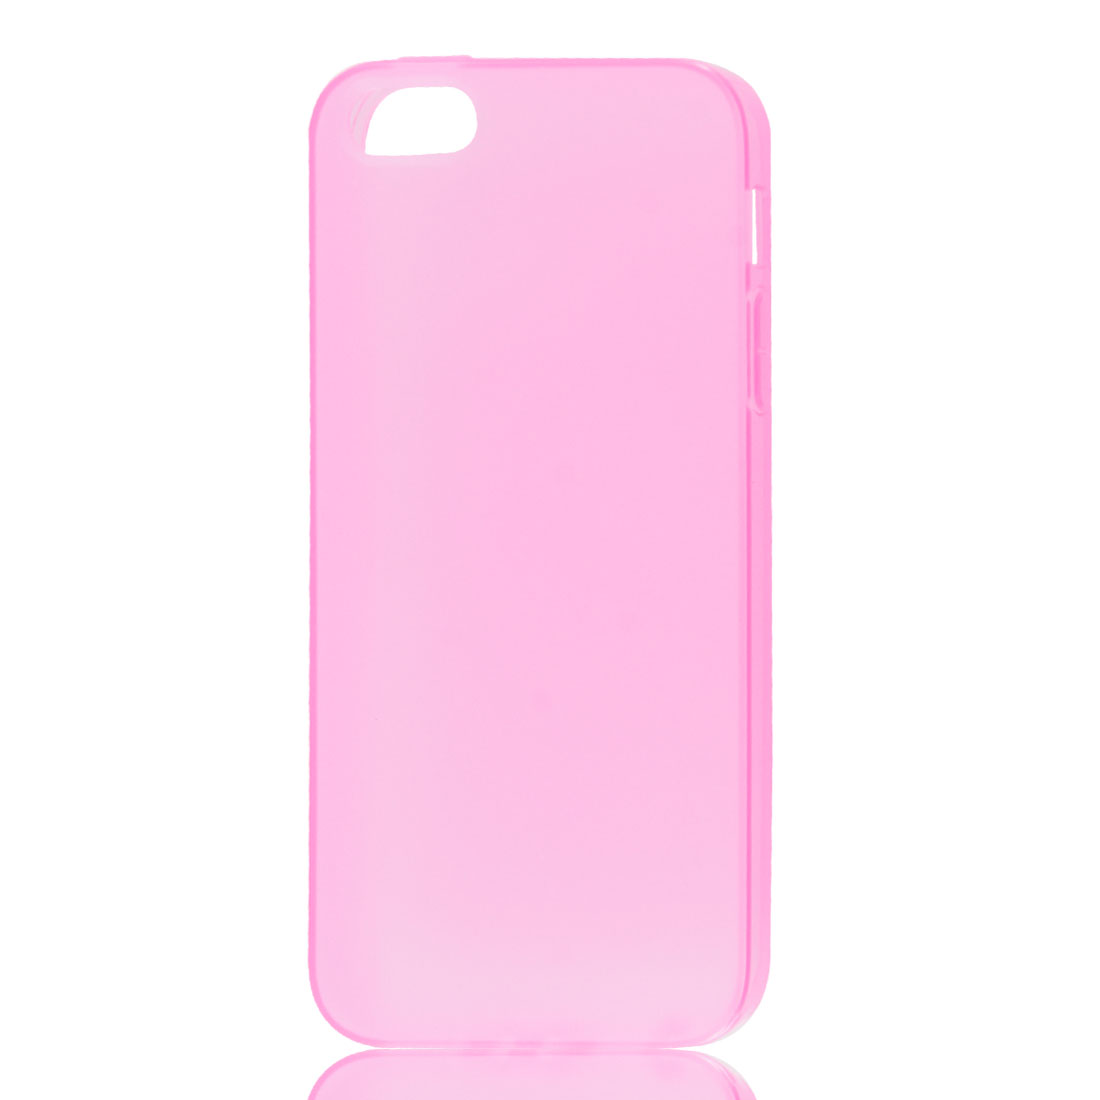 Pink Soft Plastic Matte Protective Case Cover Skin for Apple iPhone 5 5G